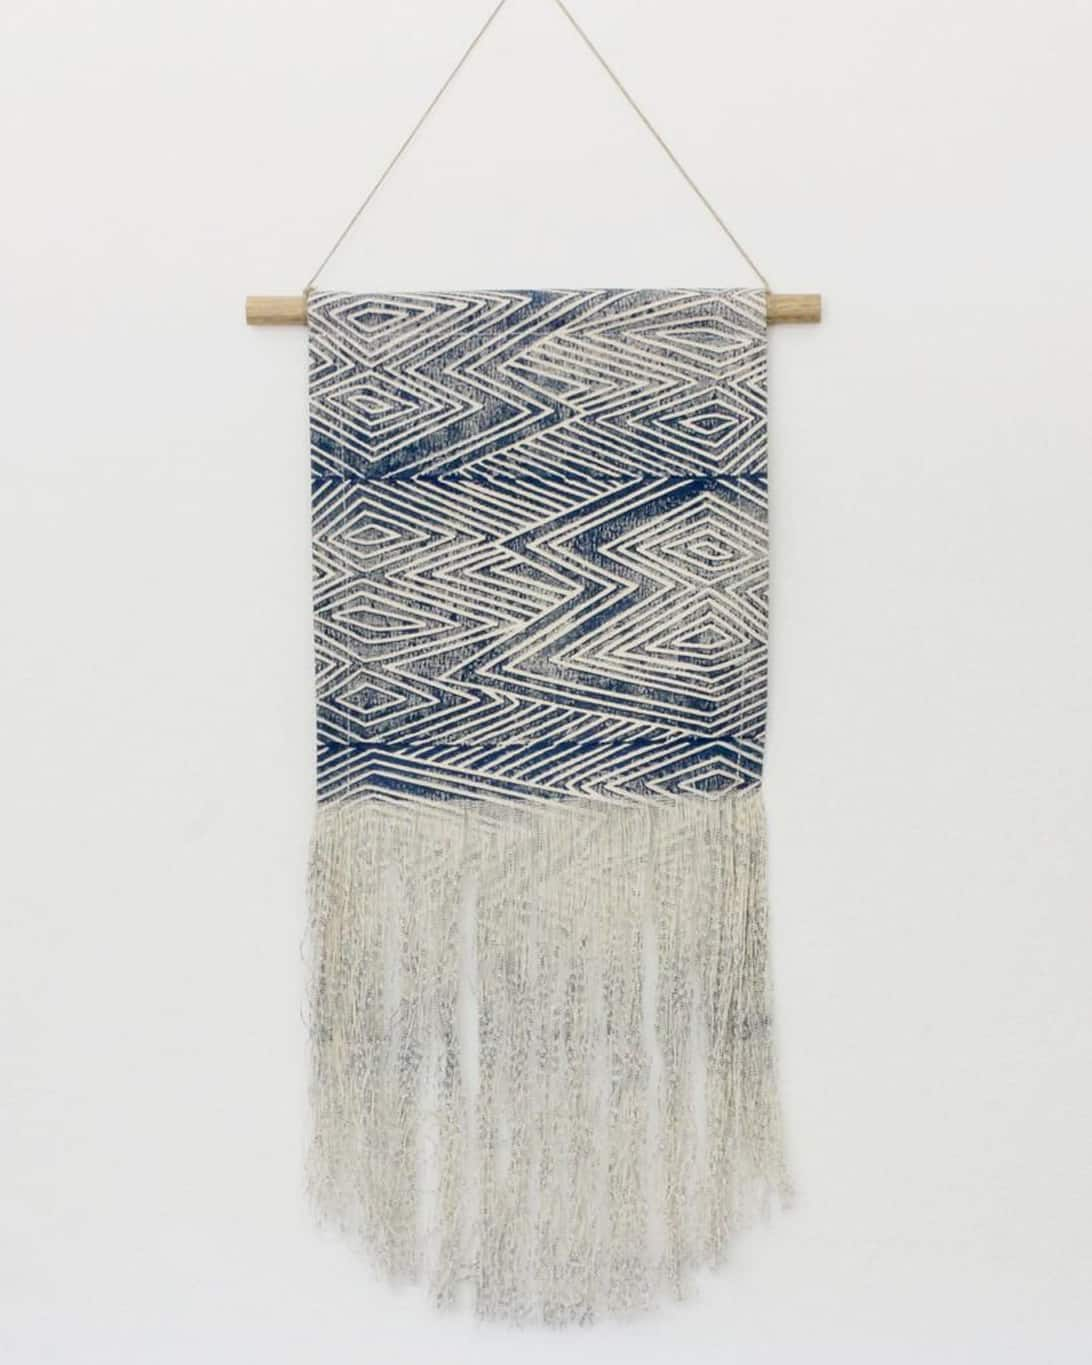 Blue and cream wall hanging on wooden rod